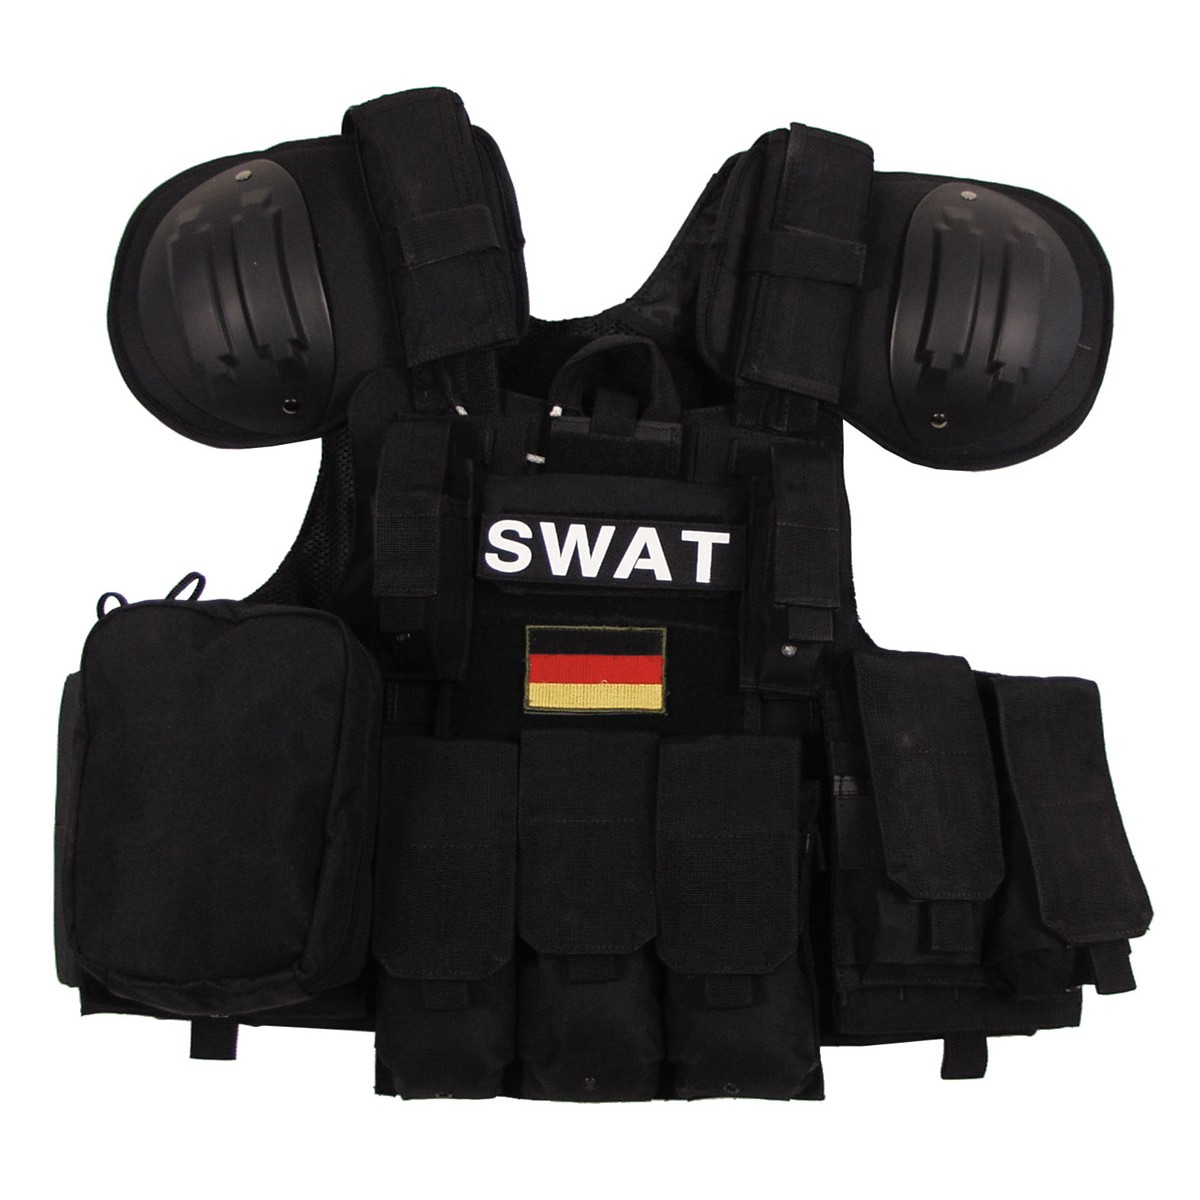 SWAT Tactical Combat MODULAR Vest w/ Bags&Pouches Quick Remove - Police Black